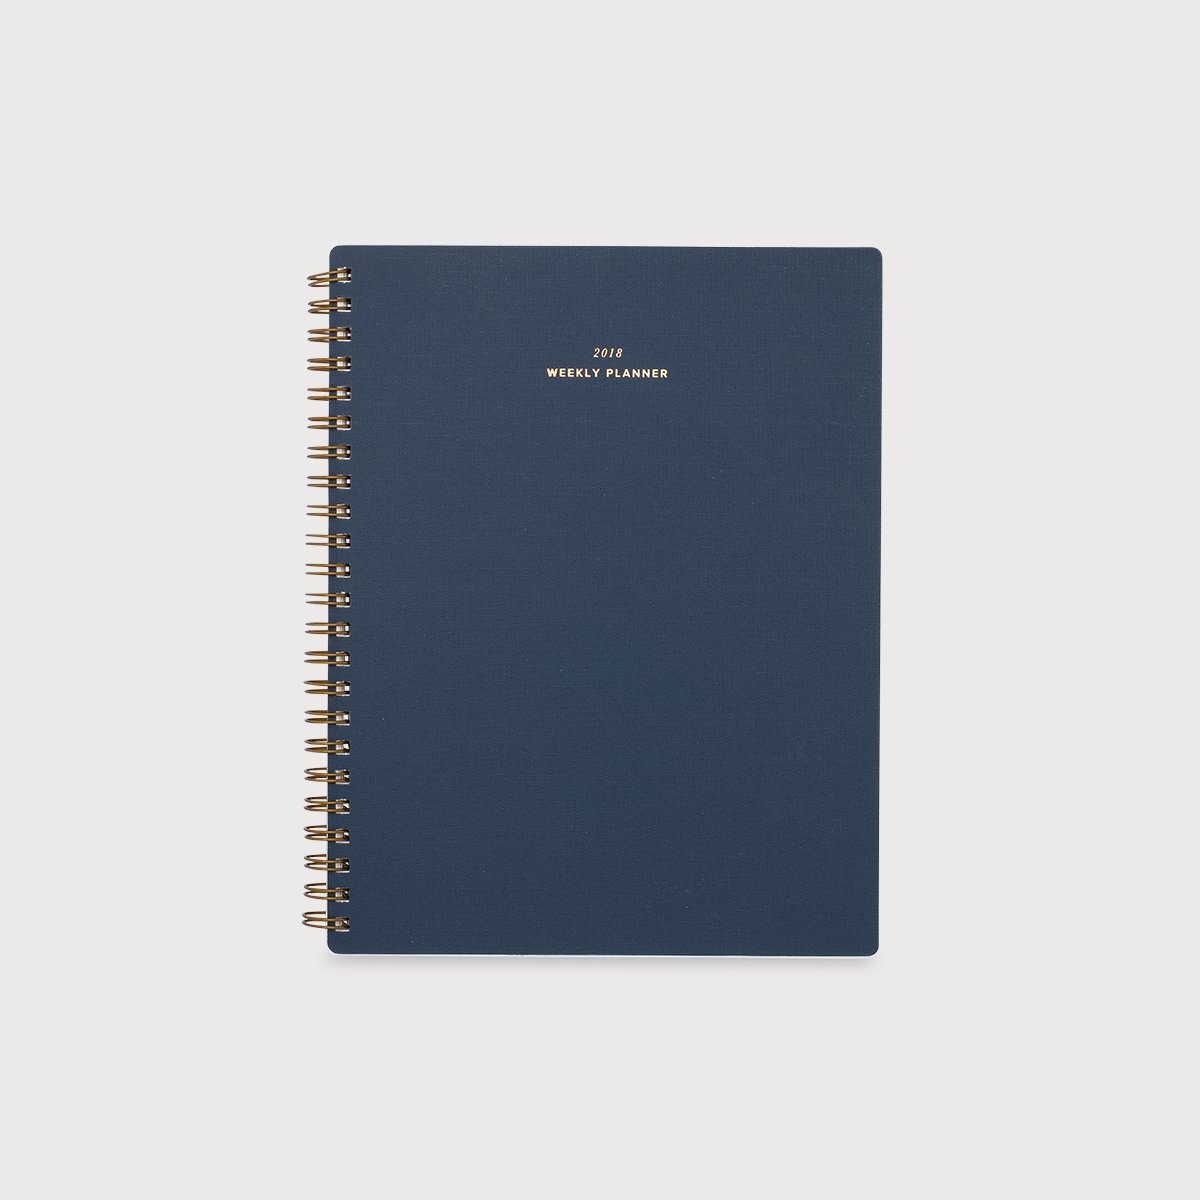 2018-Weekly-Planner-Oxford-Blue.png